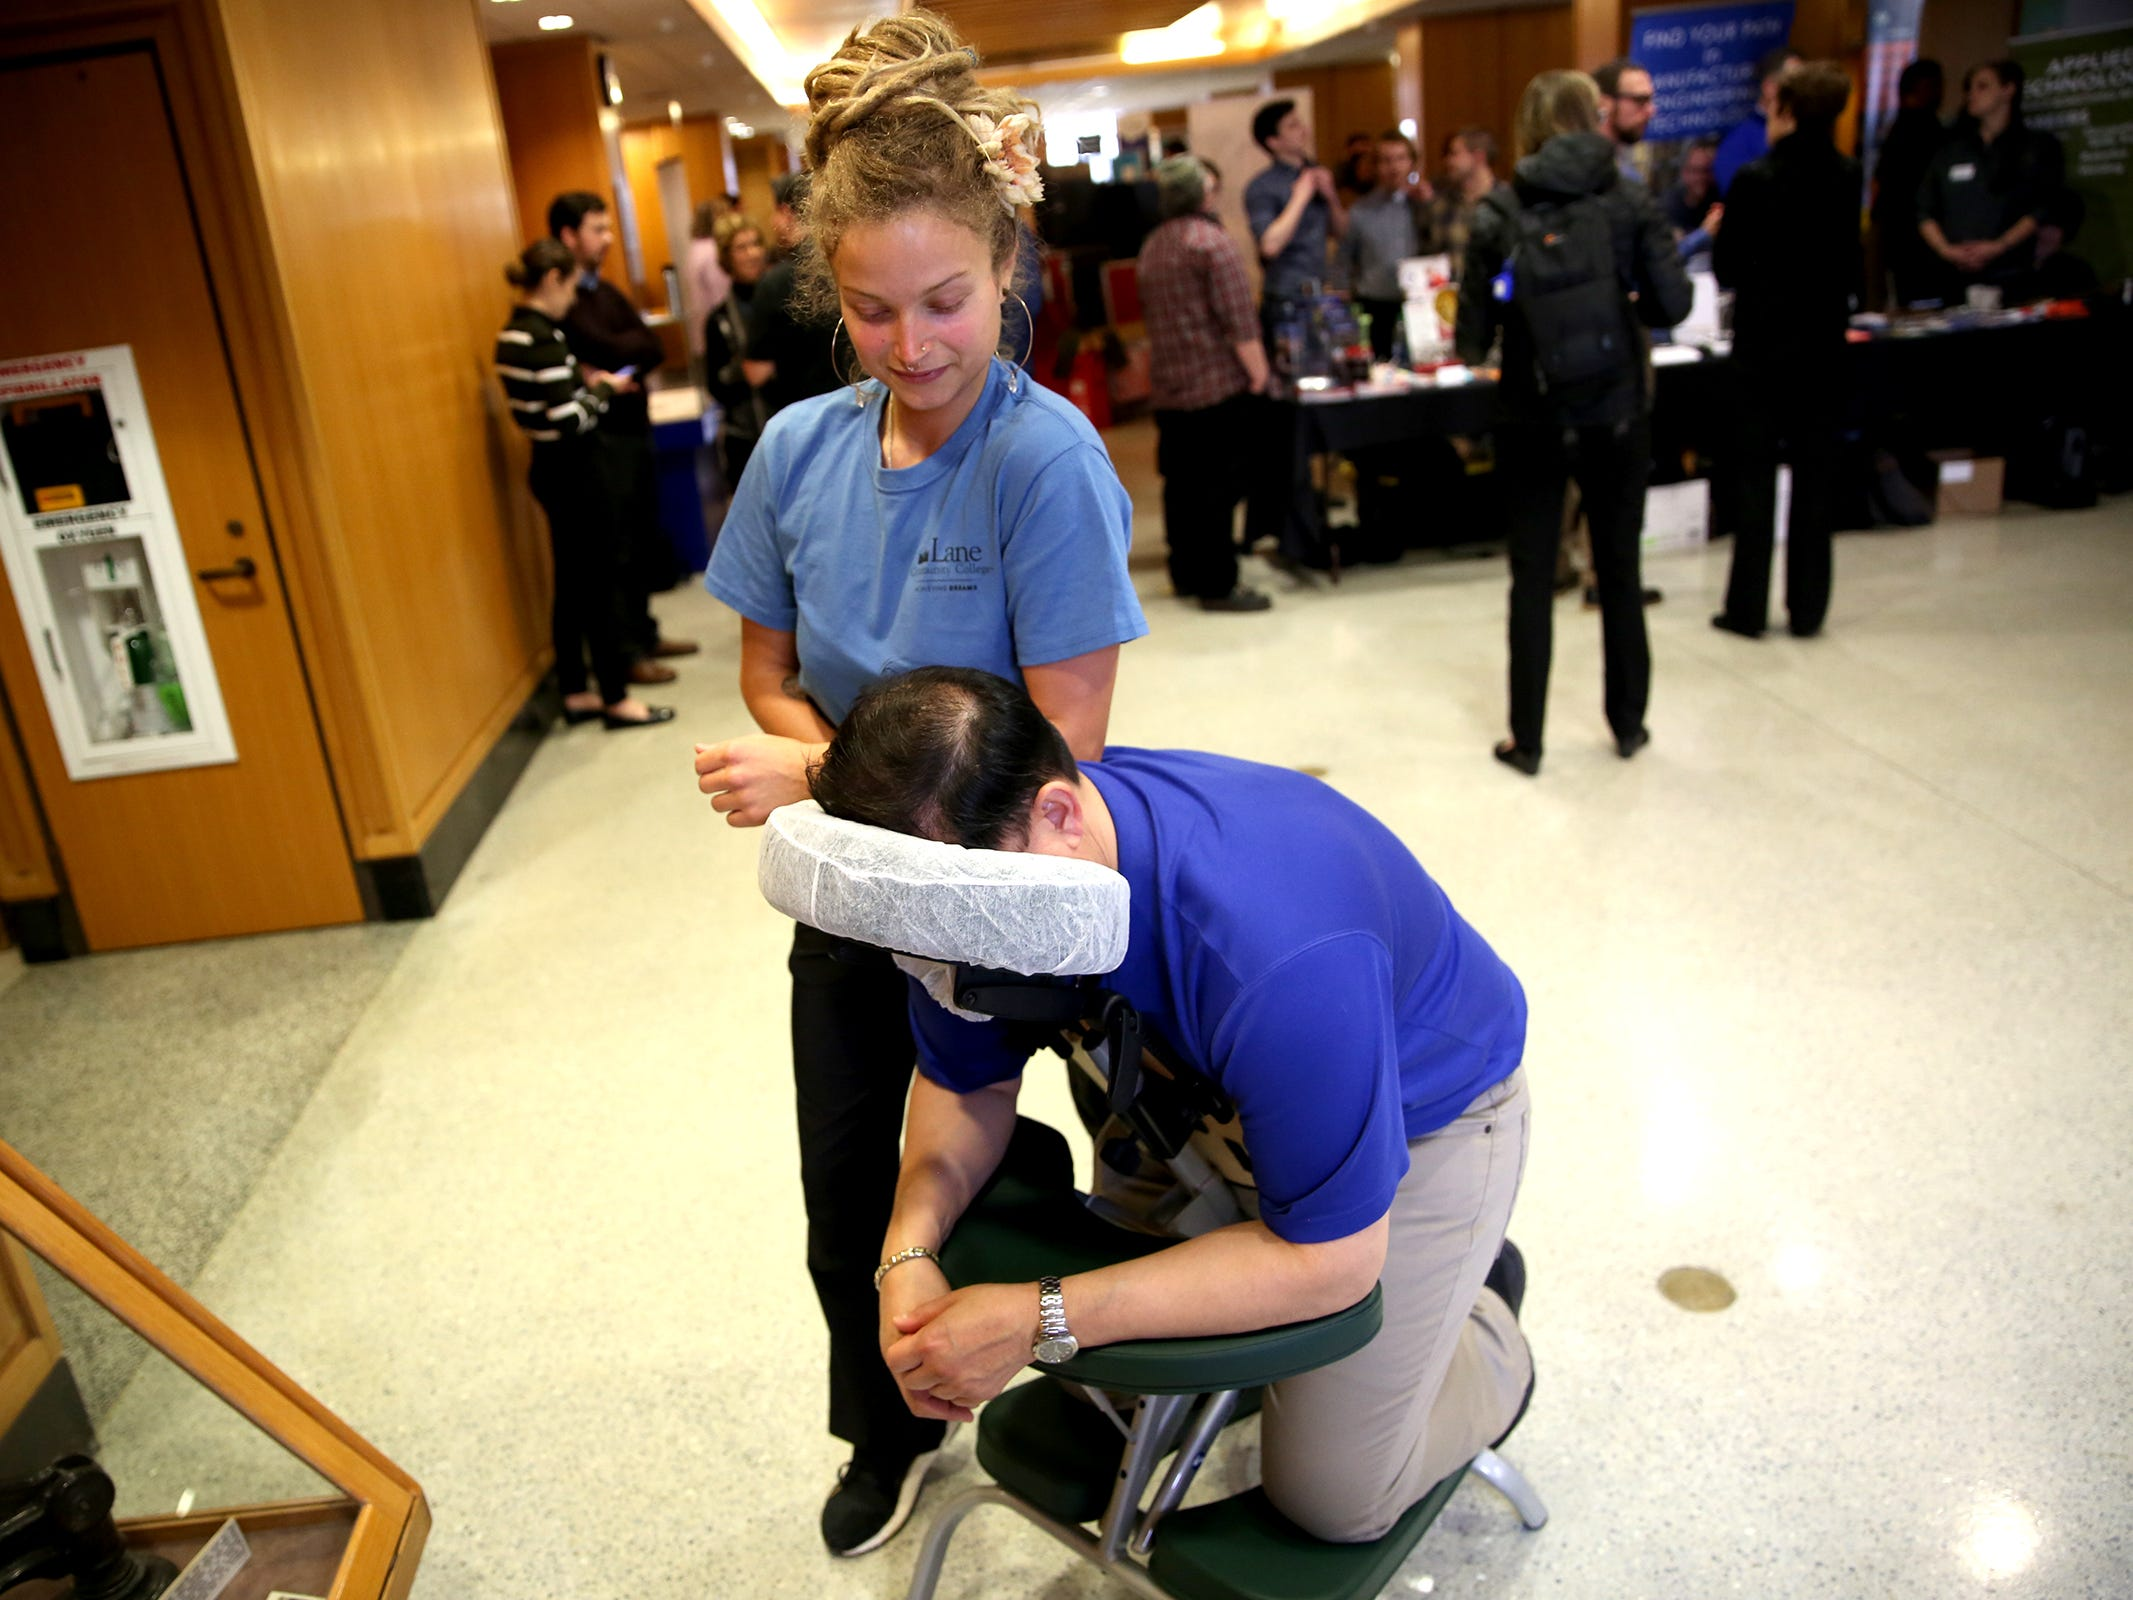 Lex Root, a student in the massage program at Lane Community College, demonstrates a massage during Career and Technical Education (CTE) day at the Oregon State Capitol in Salem on Friday, Feb. 1, 2019.